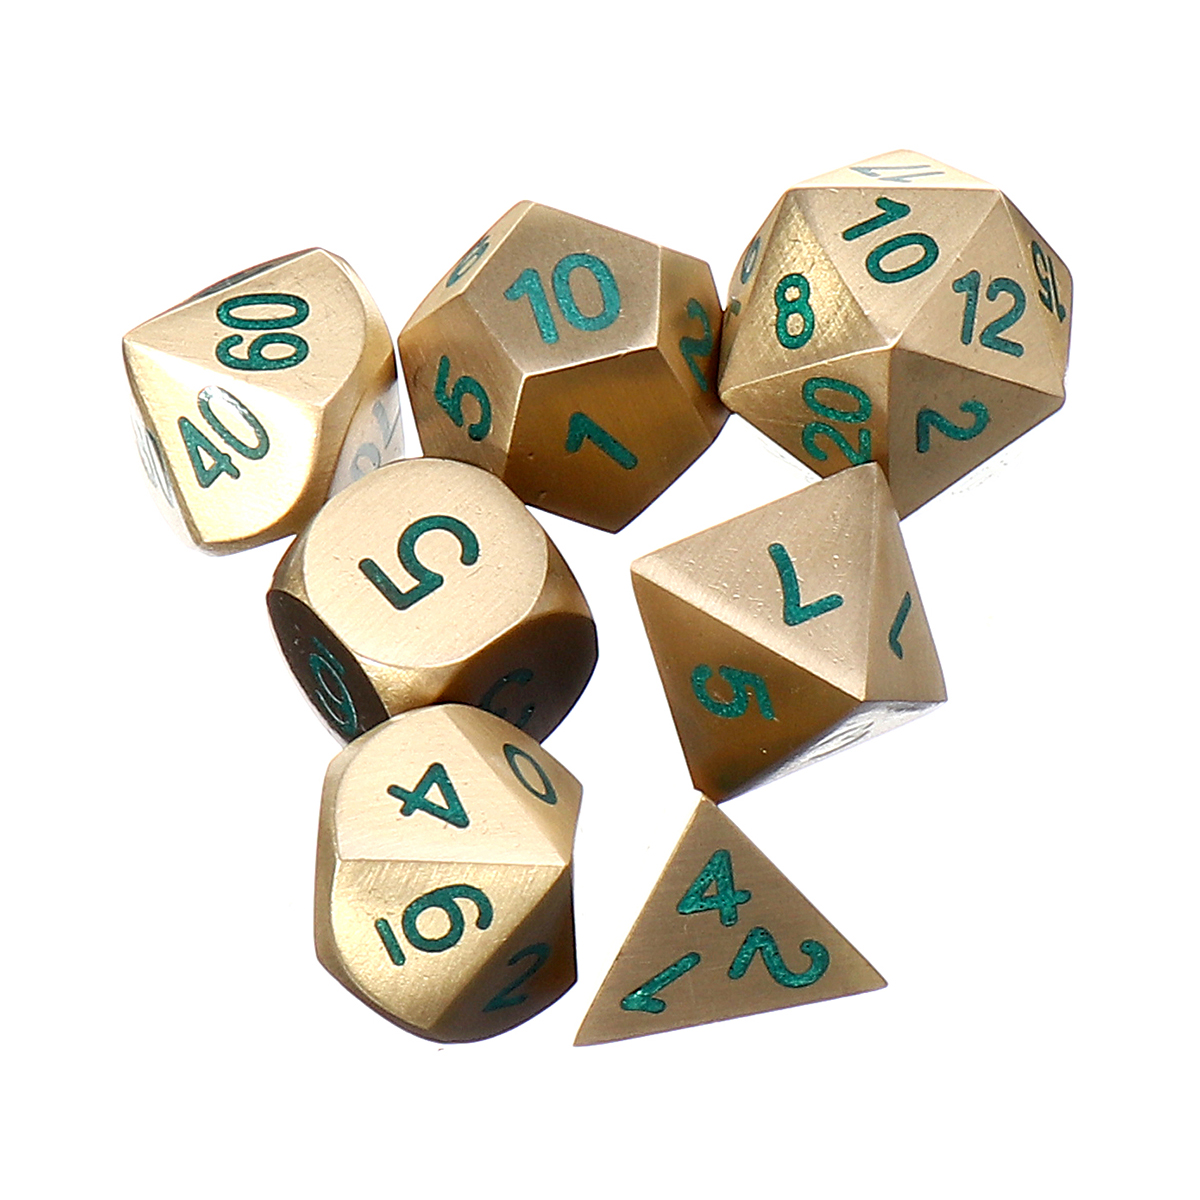 7PCS Metal Polyhedral Dice D4-D20 for Dungeons and Dragons Game/&Dice Cup #5